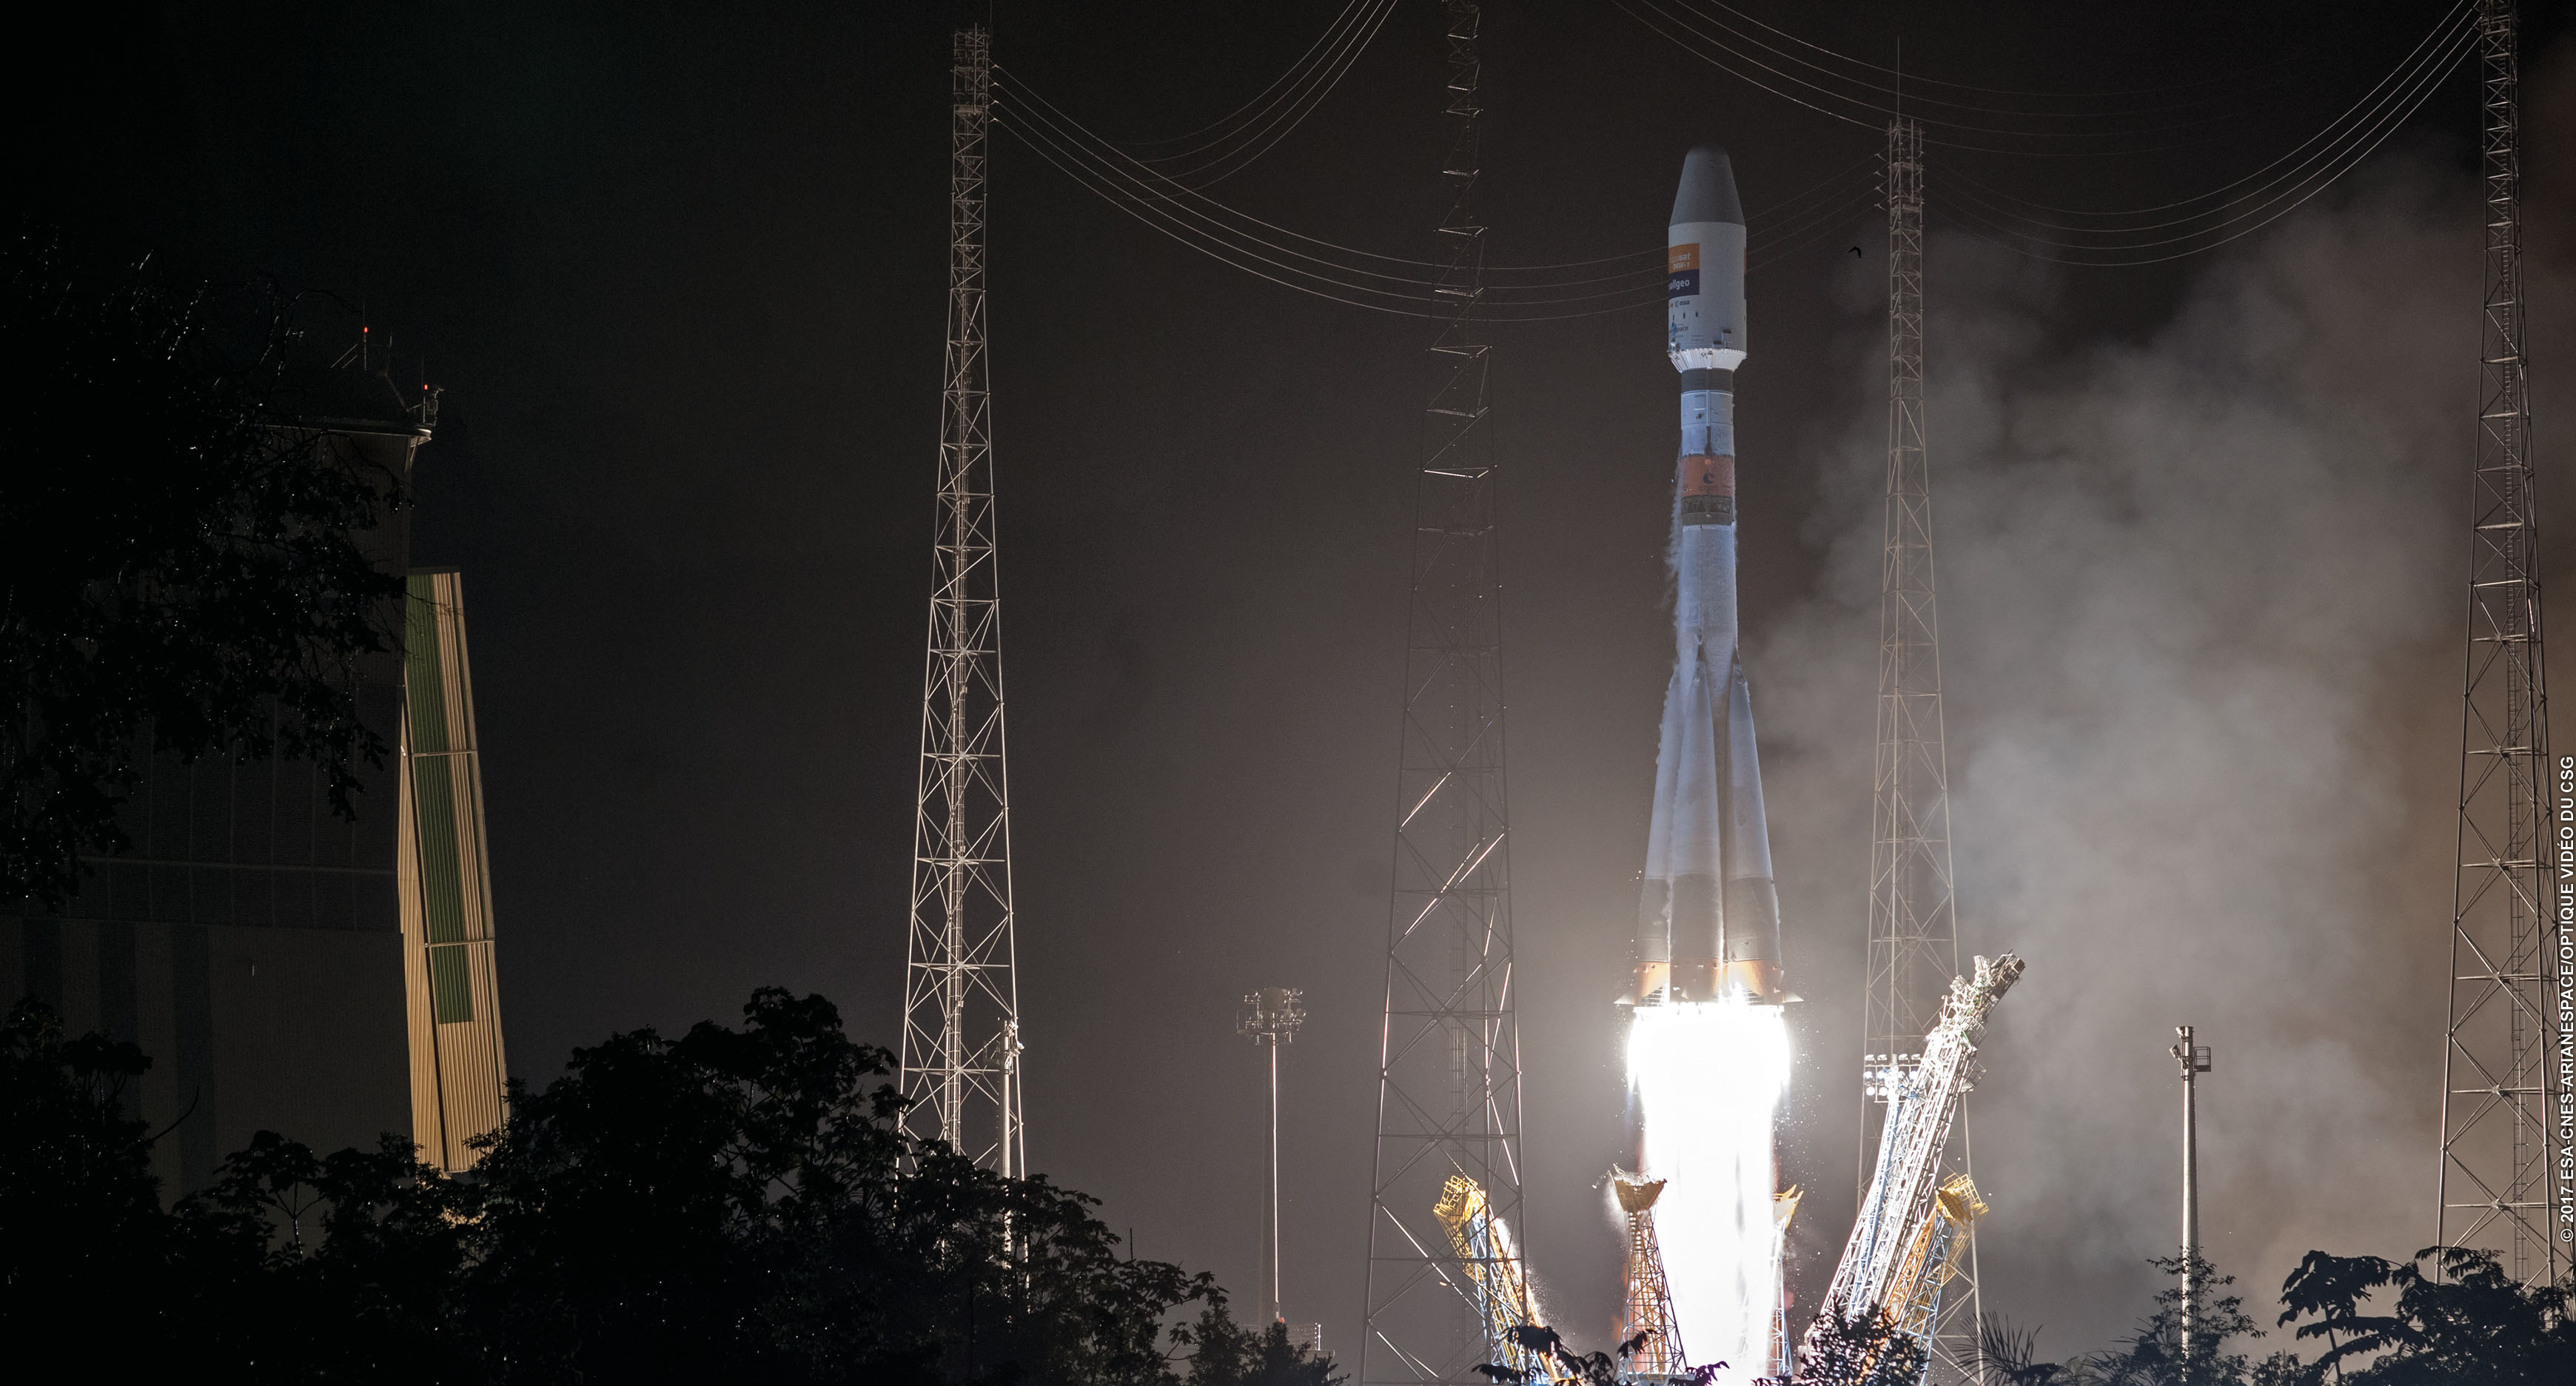 Launch of Hispasat 36W-1 (image: ESA/CNES/ARIANESPACE)